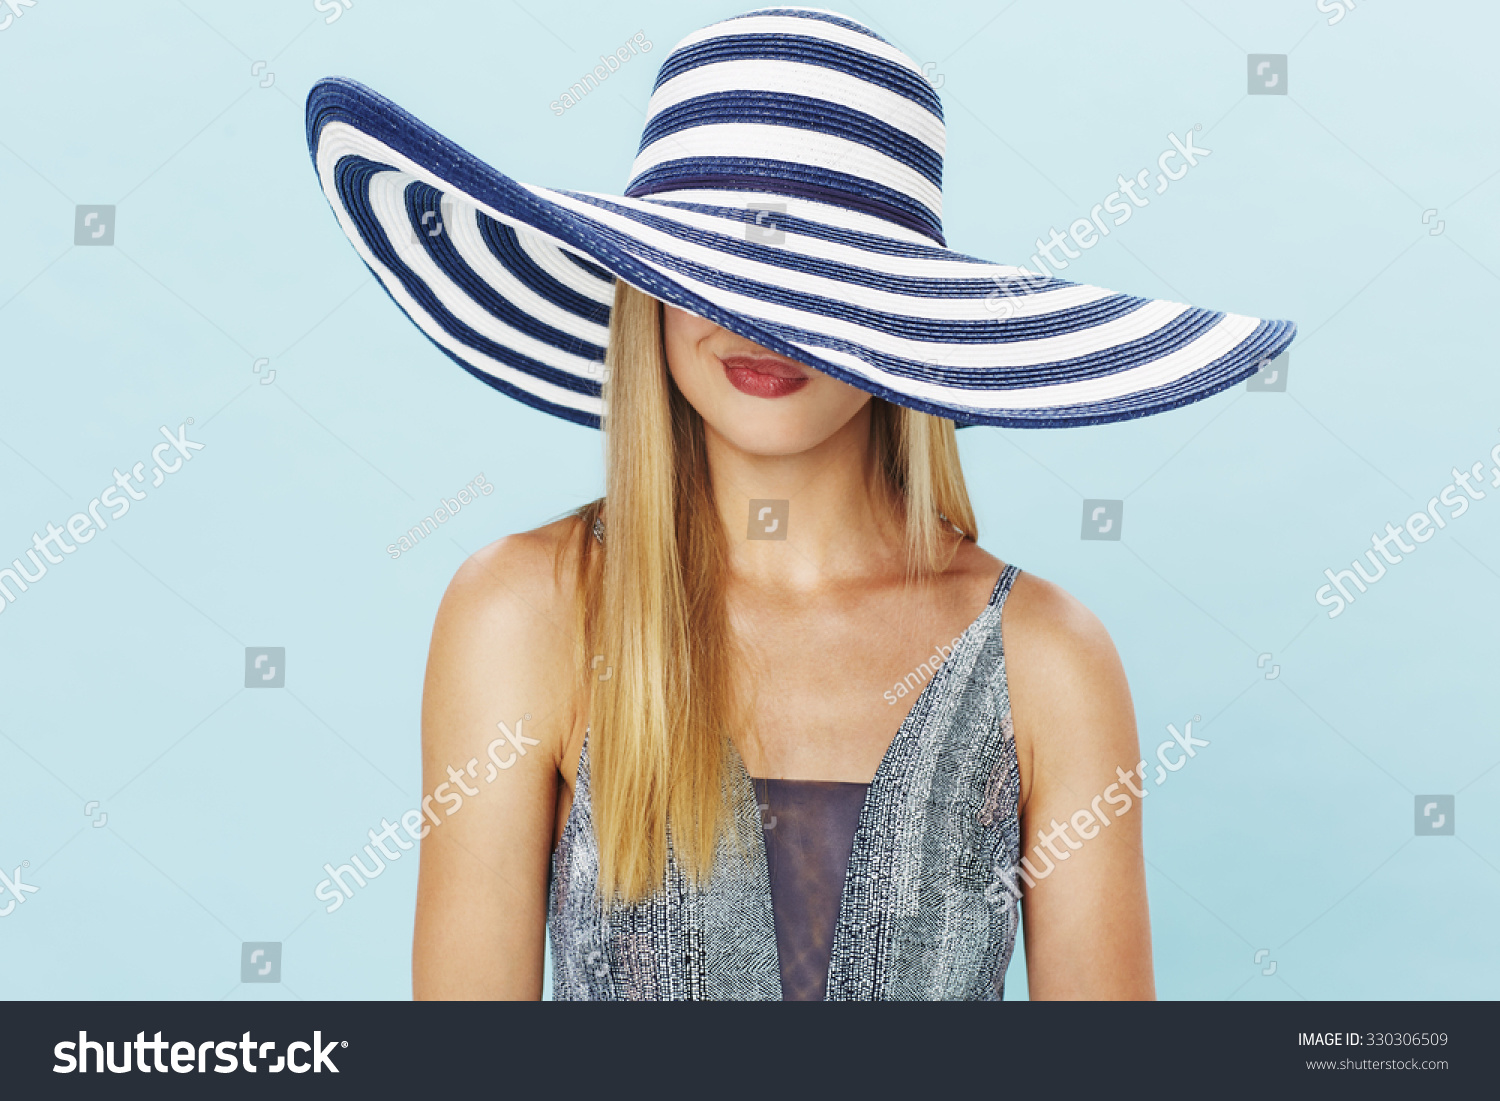 d6bd107437f2f Pouting Young Lady Summer Hat Stock Photo (Edit Now) 330306509 ...